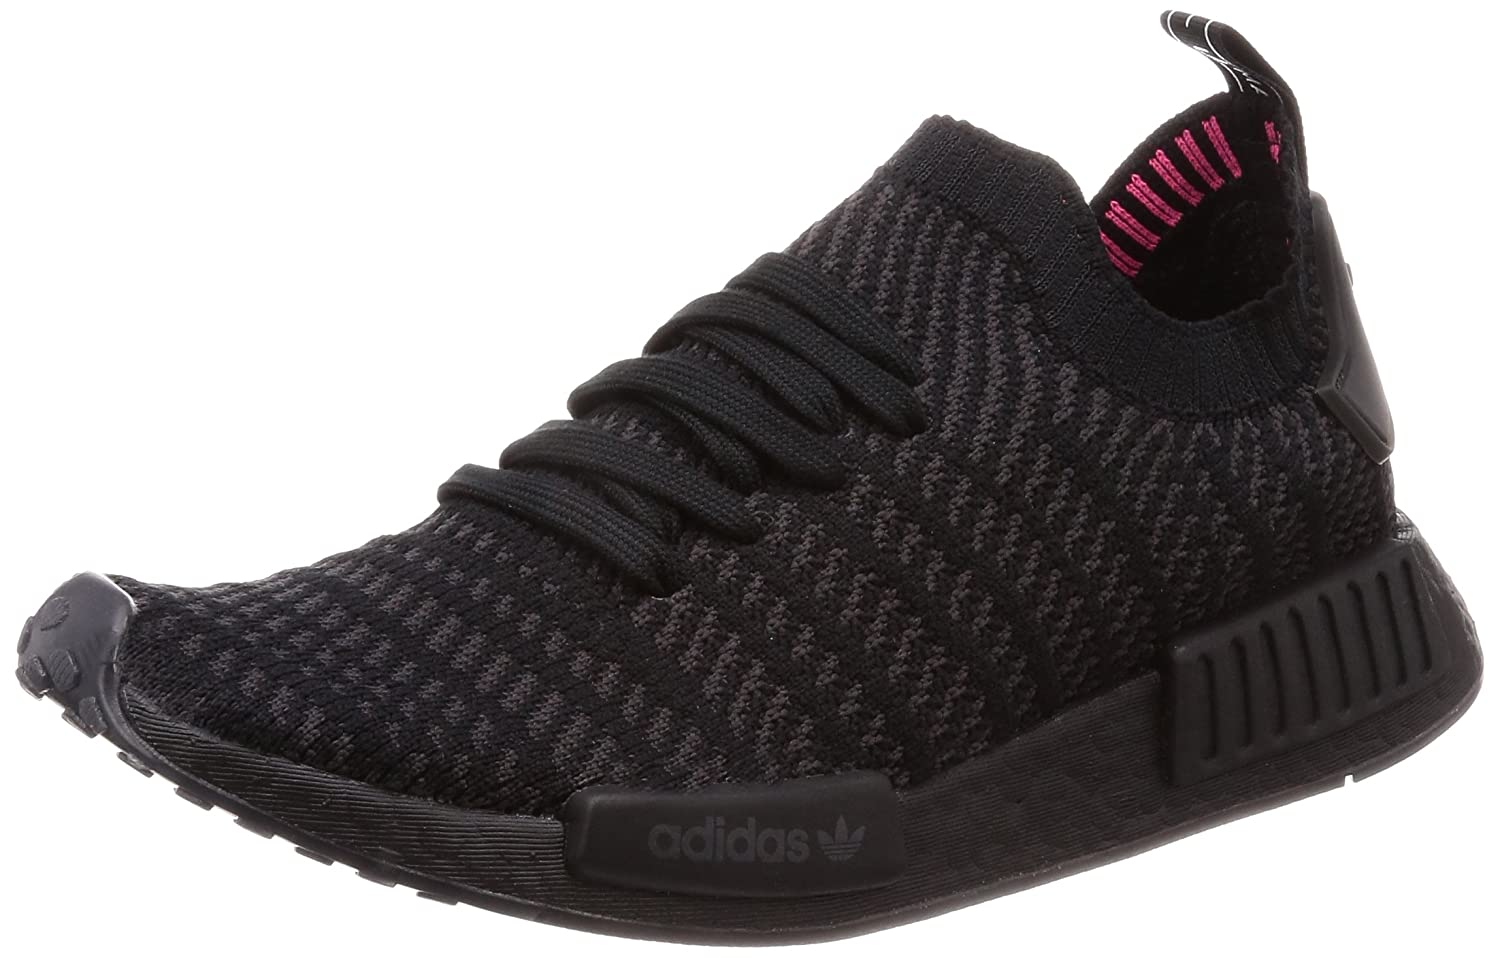 watch 2f0d3 88b97 Amazon.com | adidas Originals Men's NMD_R1 Stlt Pk Trainers ...